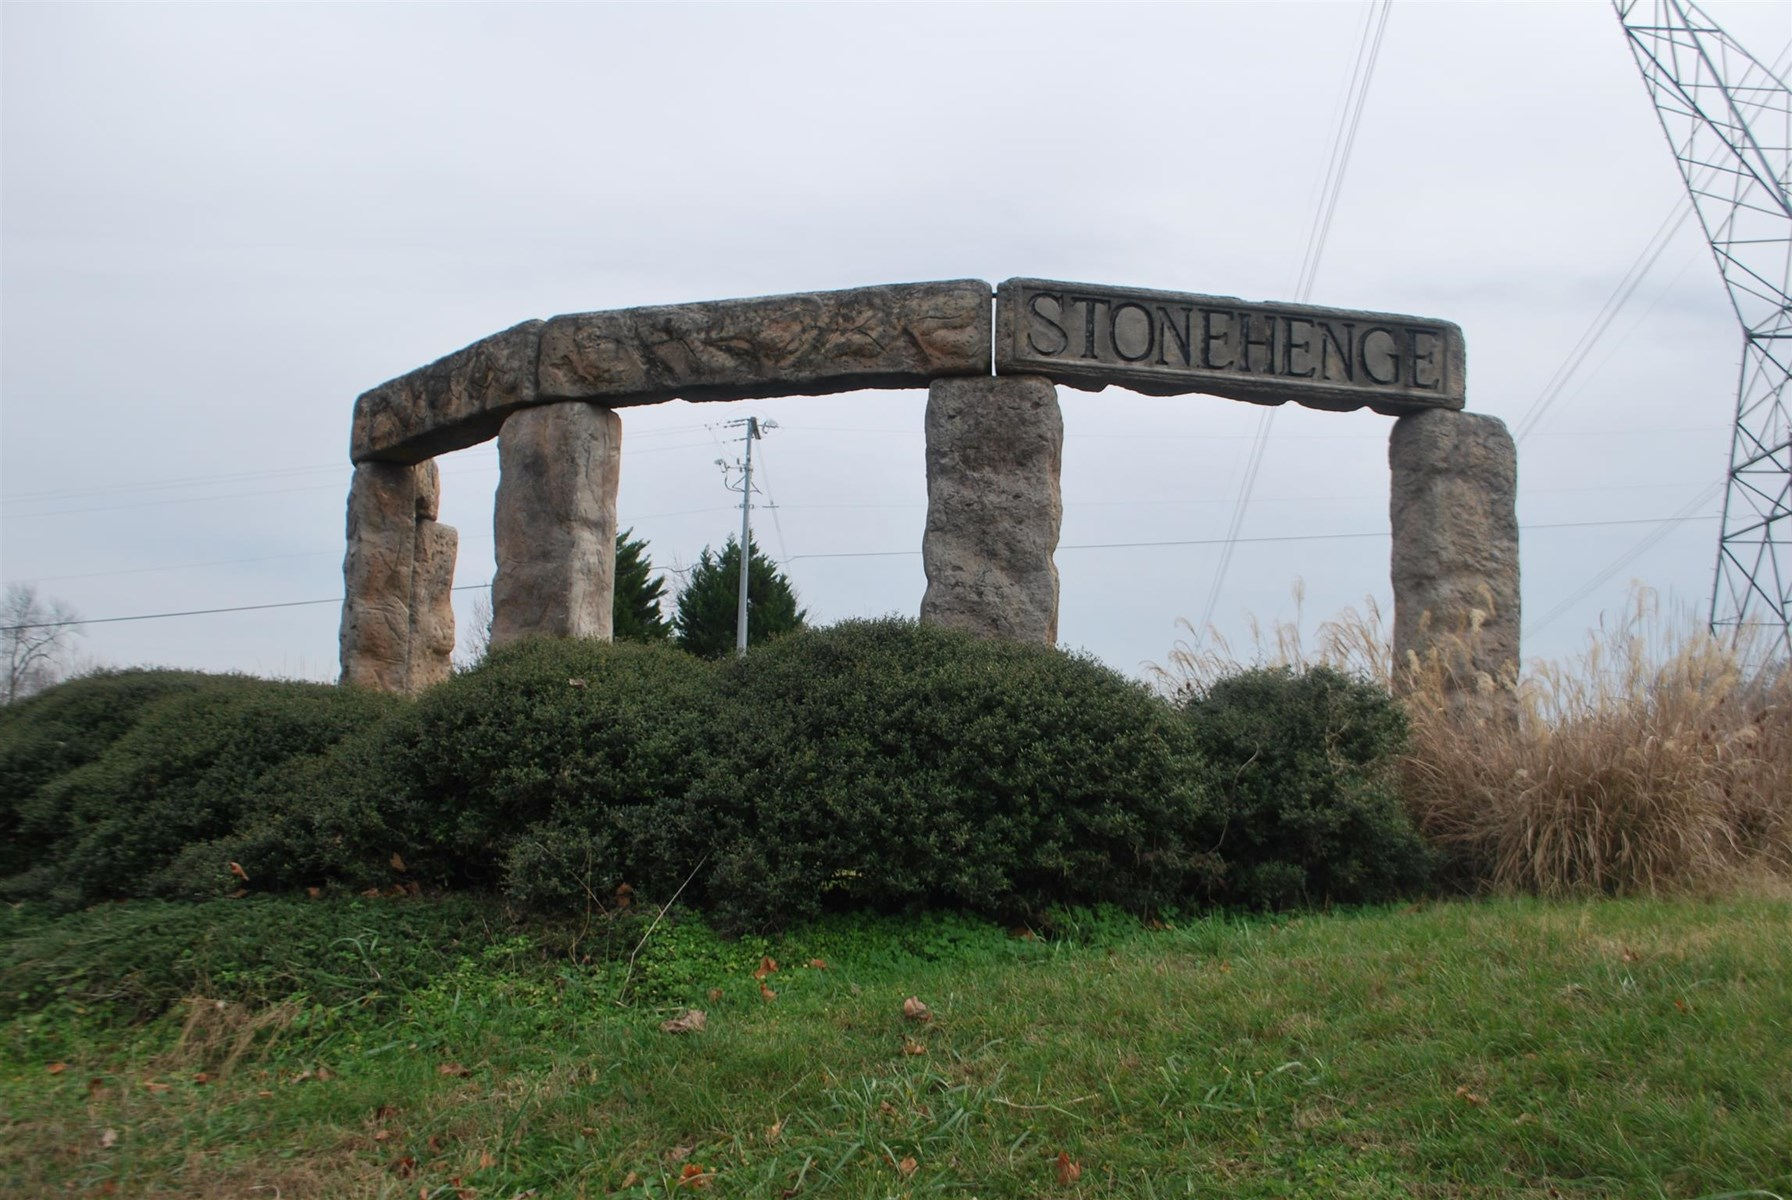 Columbia, TN Maury County, Land Only for Sale in Rural Level